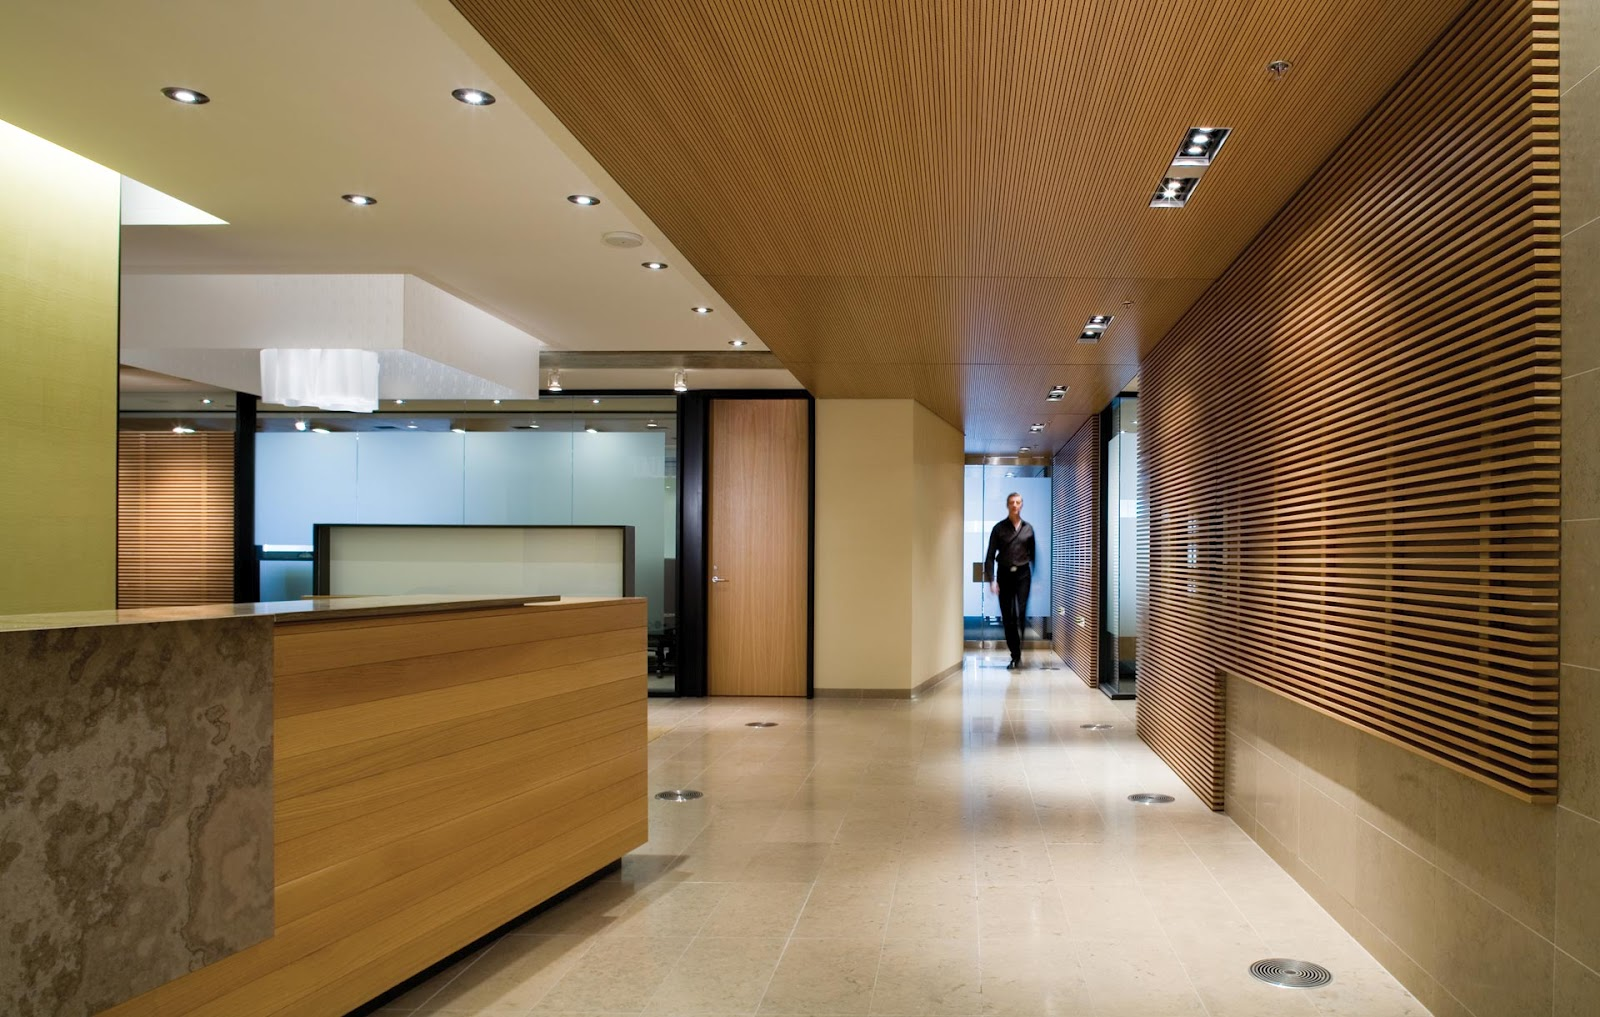 Imagine these corporate office interior design aquilon capital corporation toronto - Office interior ...